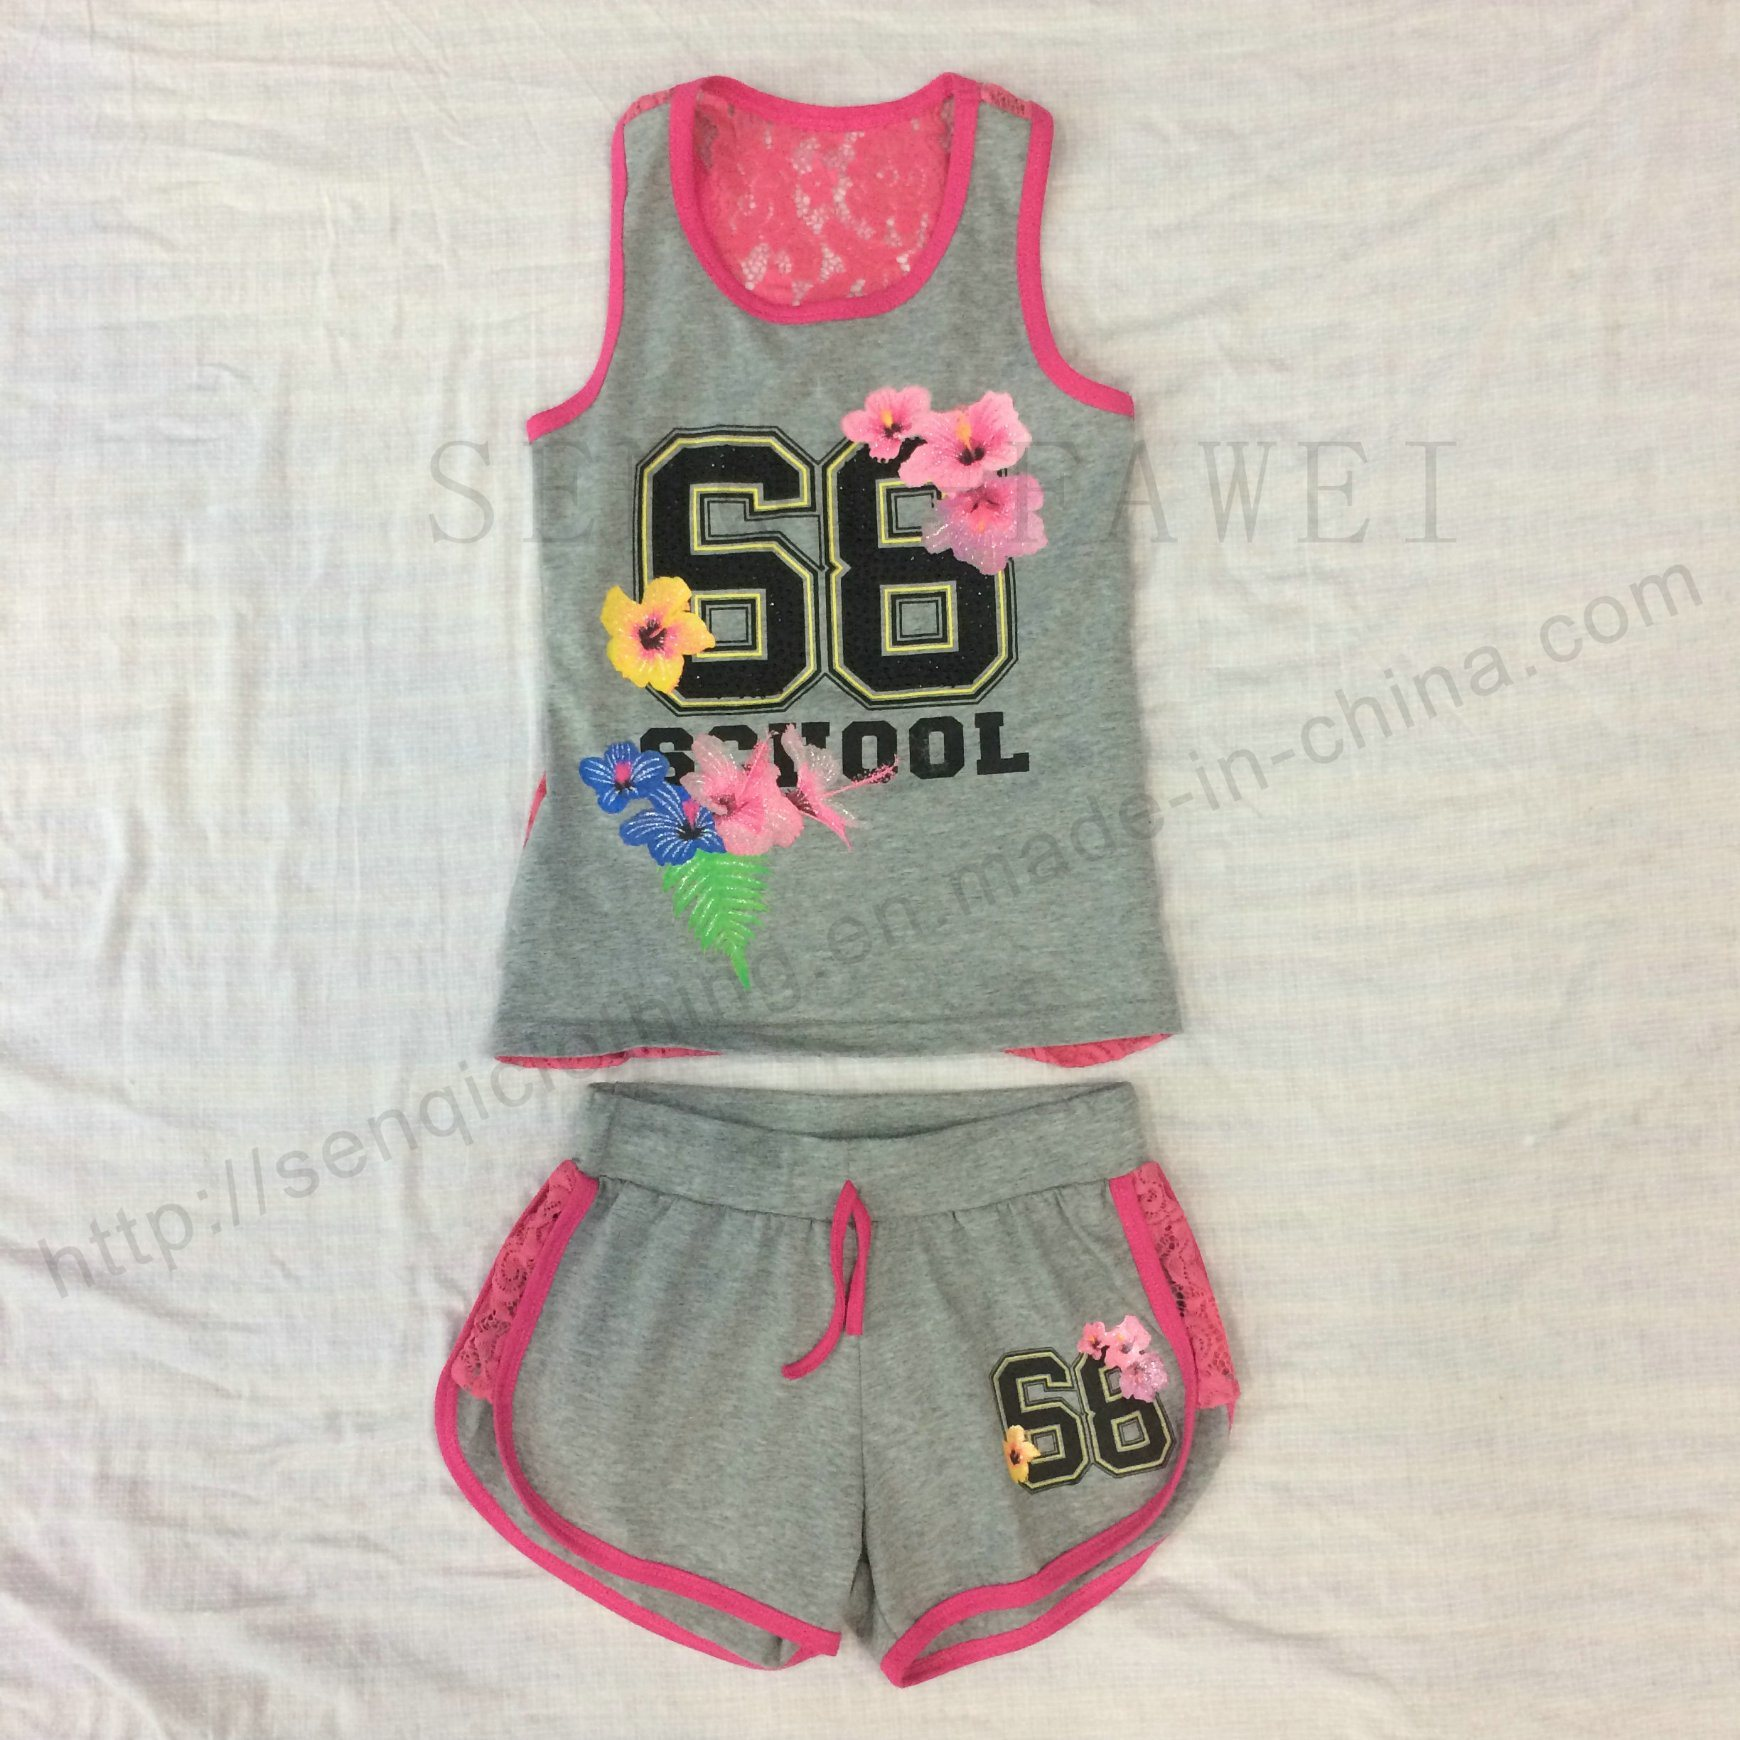 Flower Children Clothes in Kids Suit with Print in Shorts Sq-6674